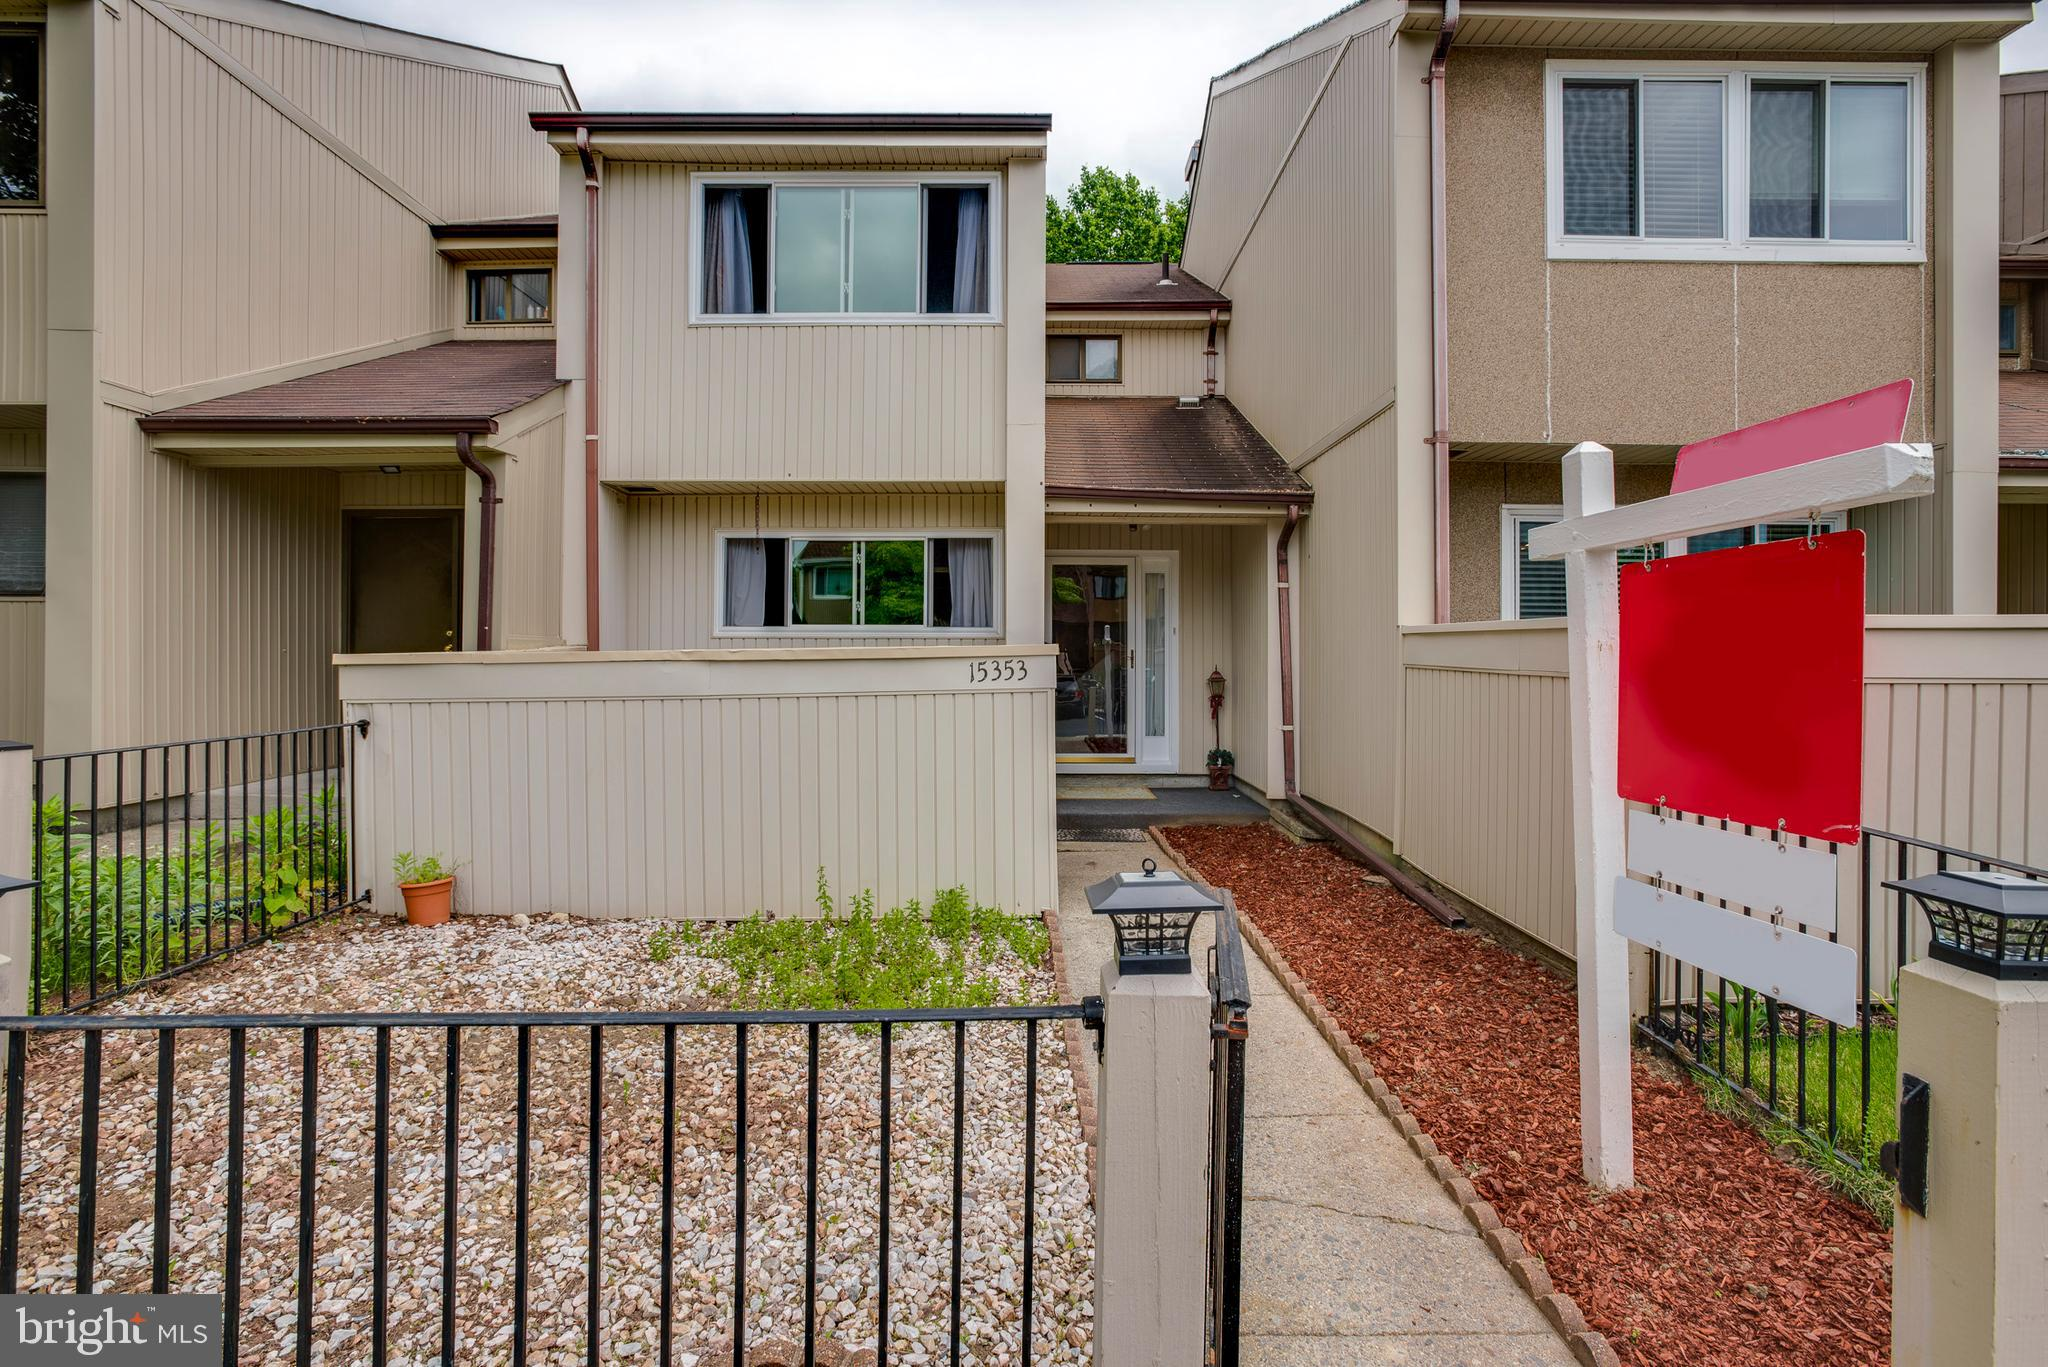 Perfect Beginning.......Charming townhome has many new features Updated Kitchen w/Backsplash, New Appliances, New Laminate Floors on the main level, New Windows, Updated Bathrooms, HVAC(1 year),  Finished Basement w/Plank Floors, New sliding Glass Door, New Fixtures, Fully Fenced, Wall to Wall Carpet in Bedrooms, and low HOA . Close to major highways, restaurants, shops,  Commuter Lots and minutes away from Stonebridge Center